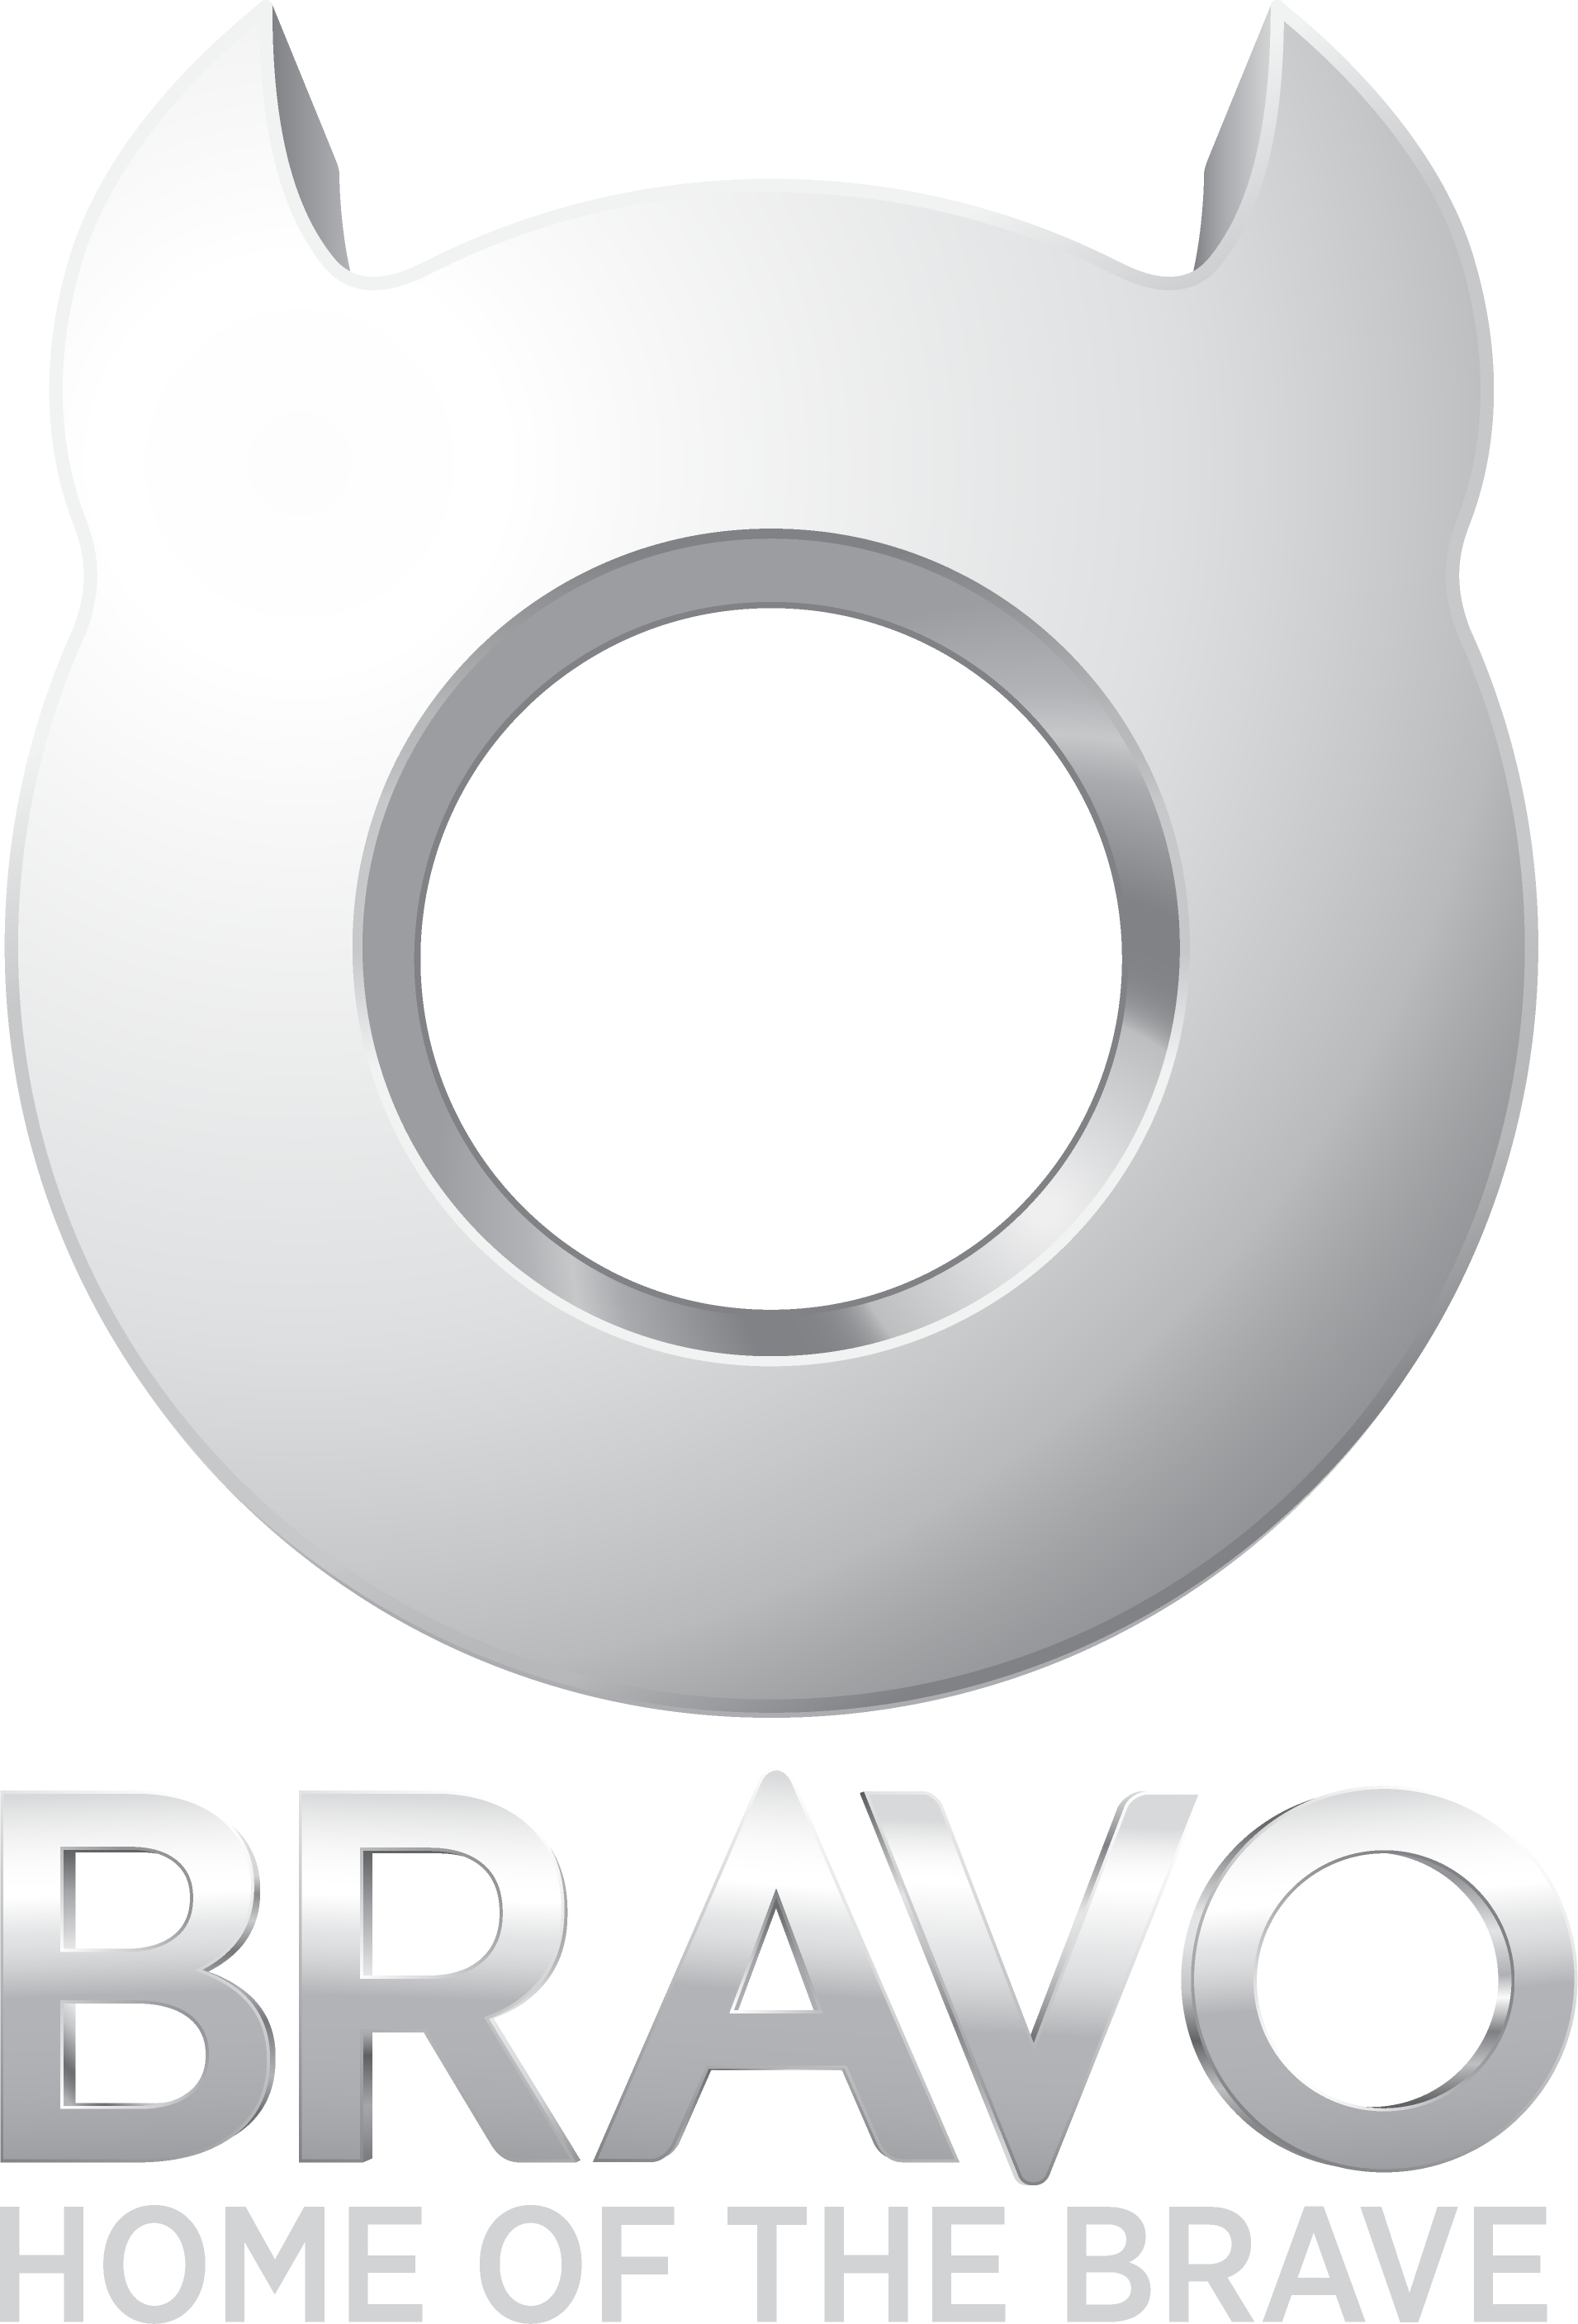 Bravo (UK) | Logopedia | FANDOM powered by Wikia